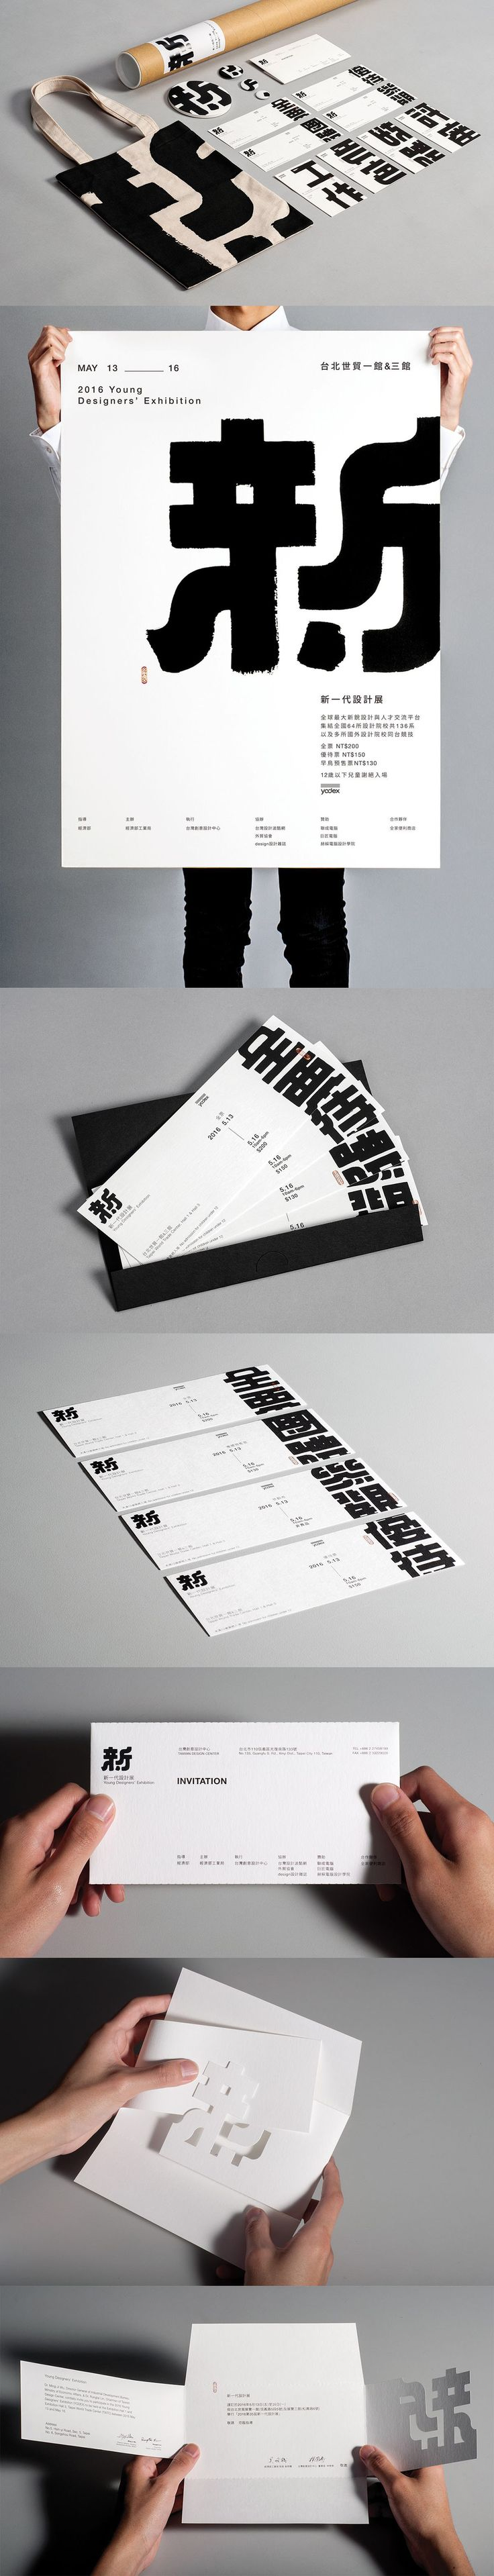 Chinese Characters in Page Layouts and Business Cards  -新一代設計展 主視覺提案